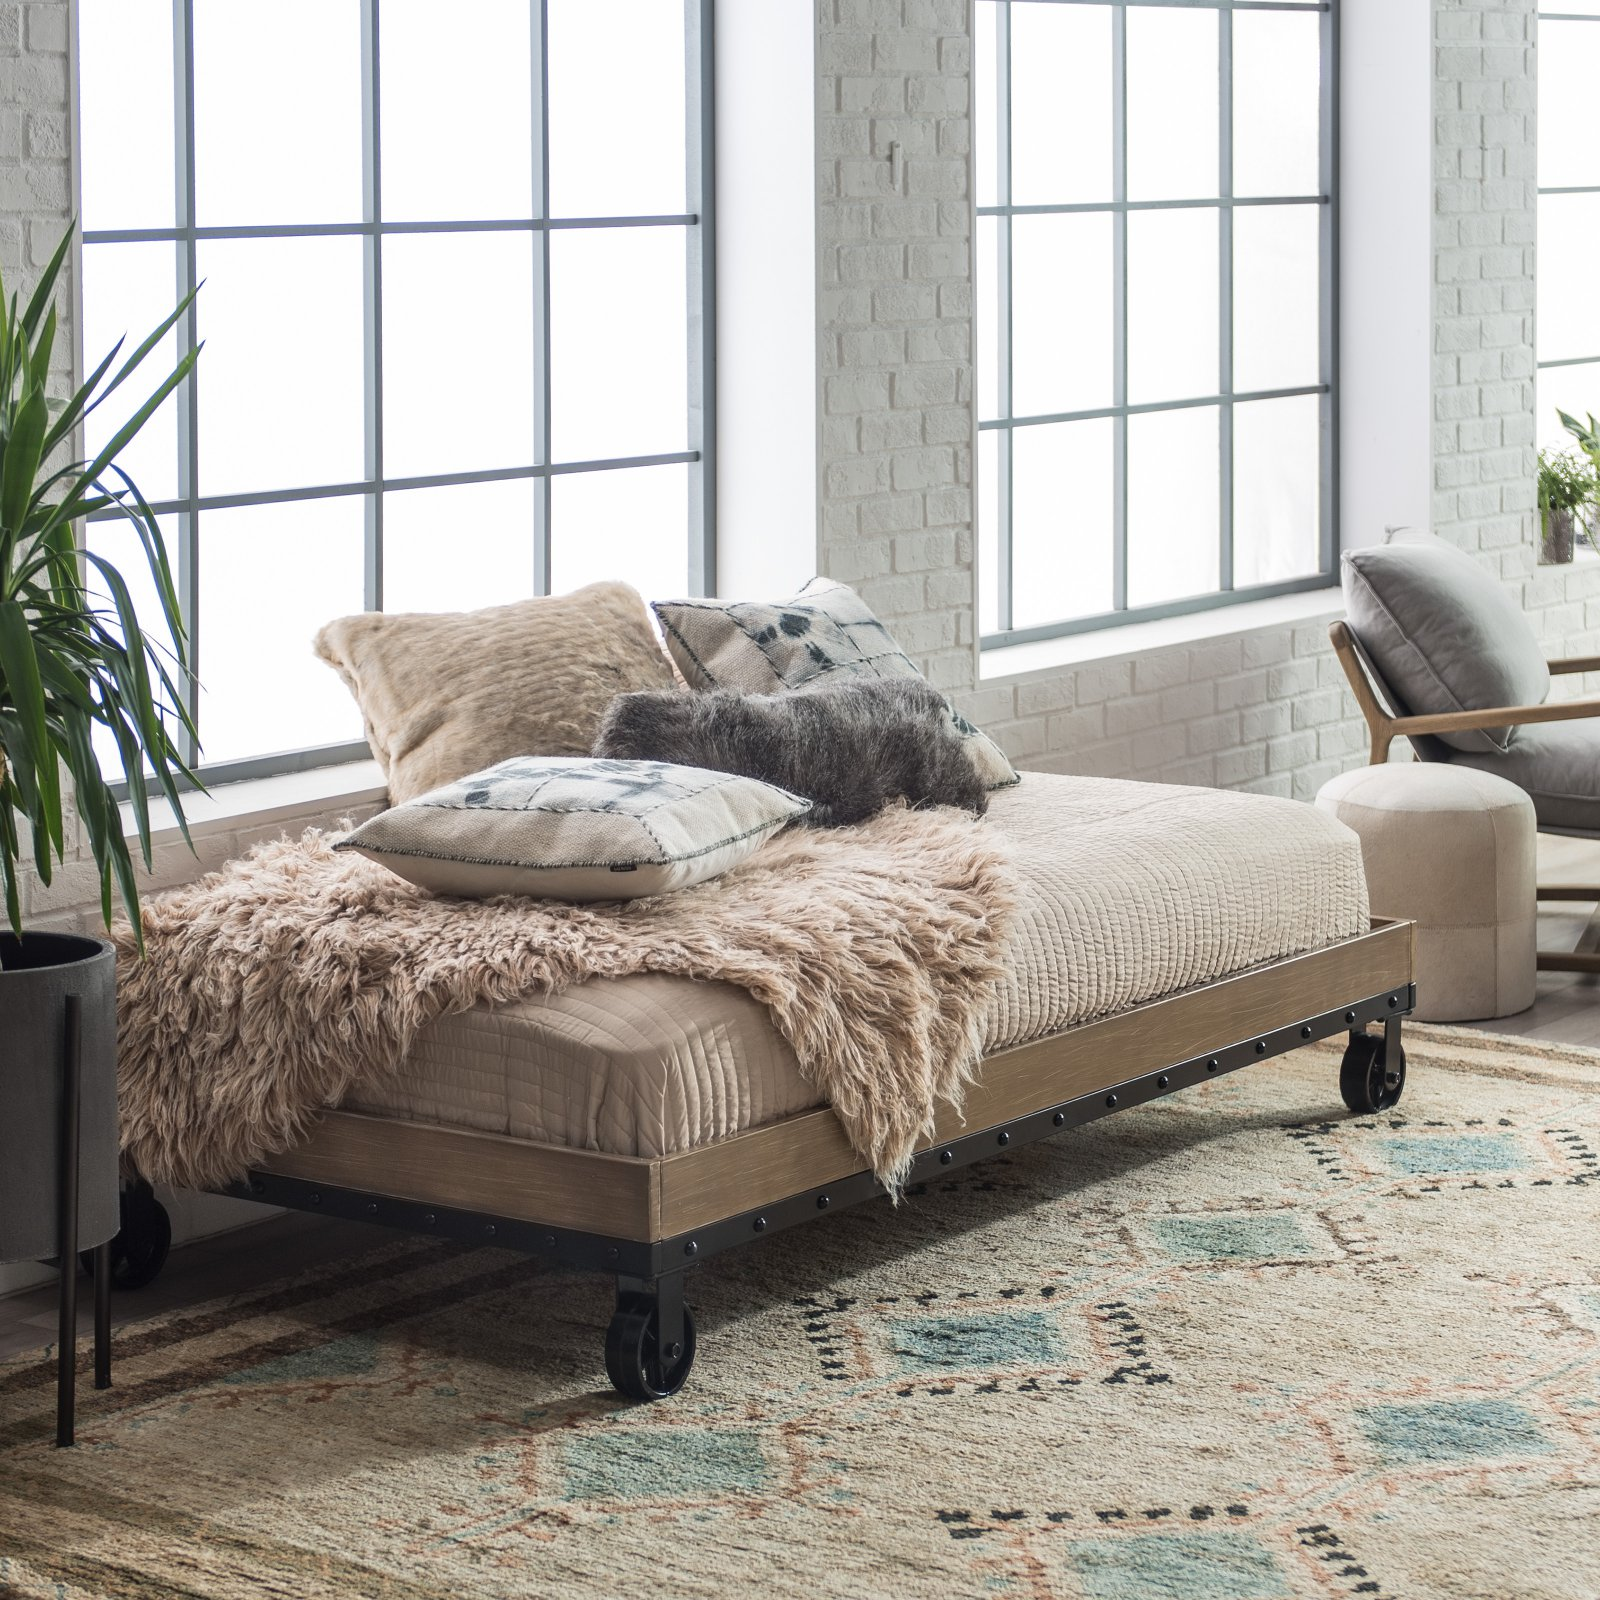 Belham Living Merced Daybed - Washed Gray